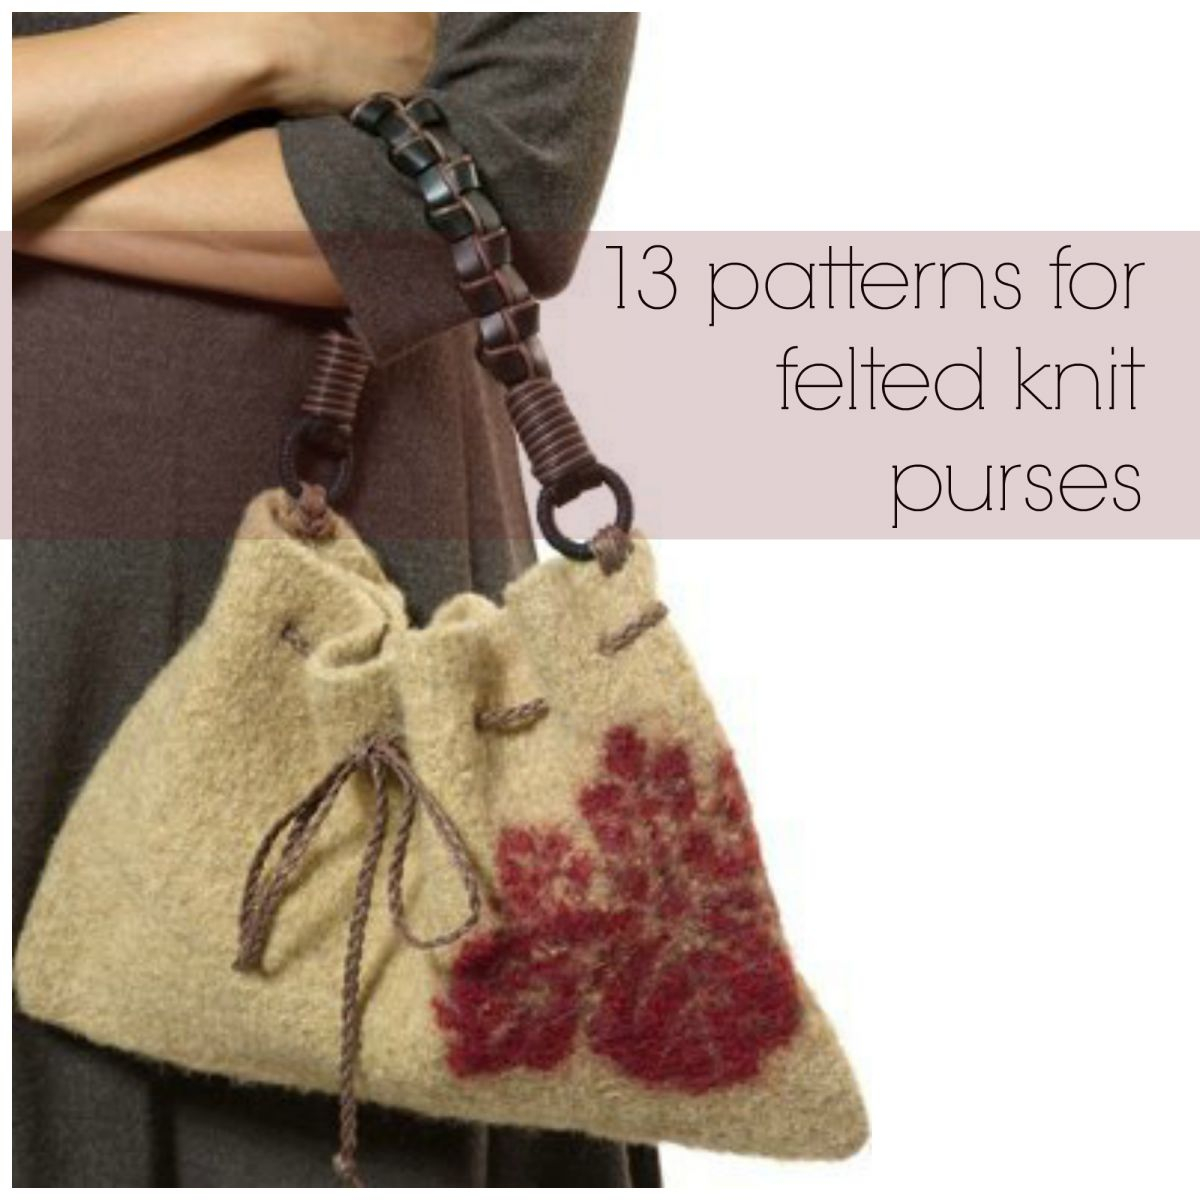 Knitted Bag Pattern 13 Patterns For Felted Knit Purses Allfreeknitting